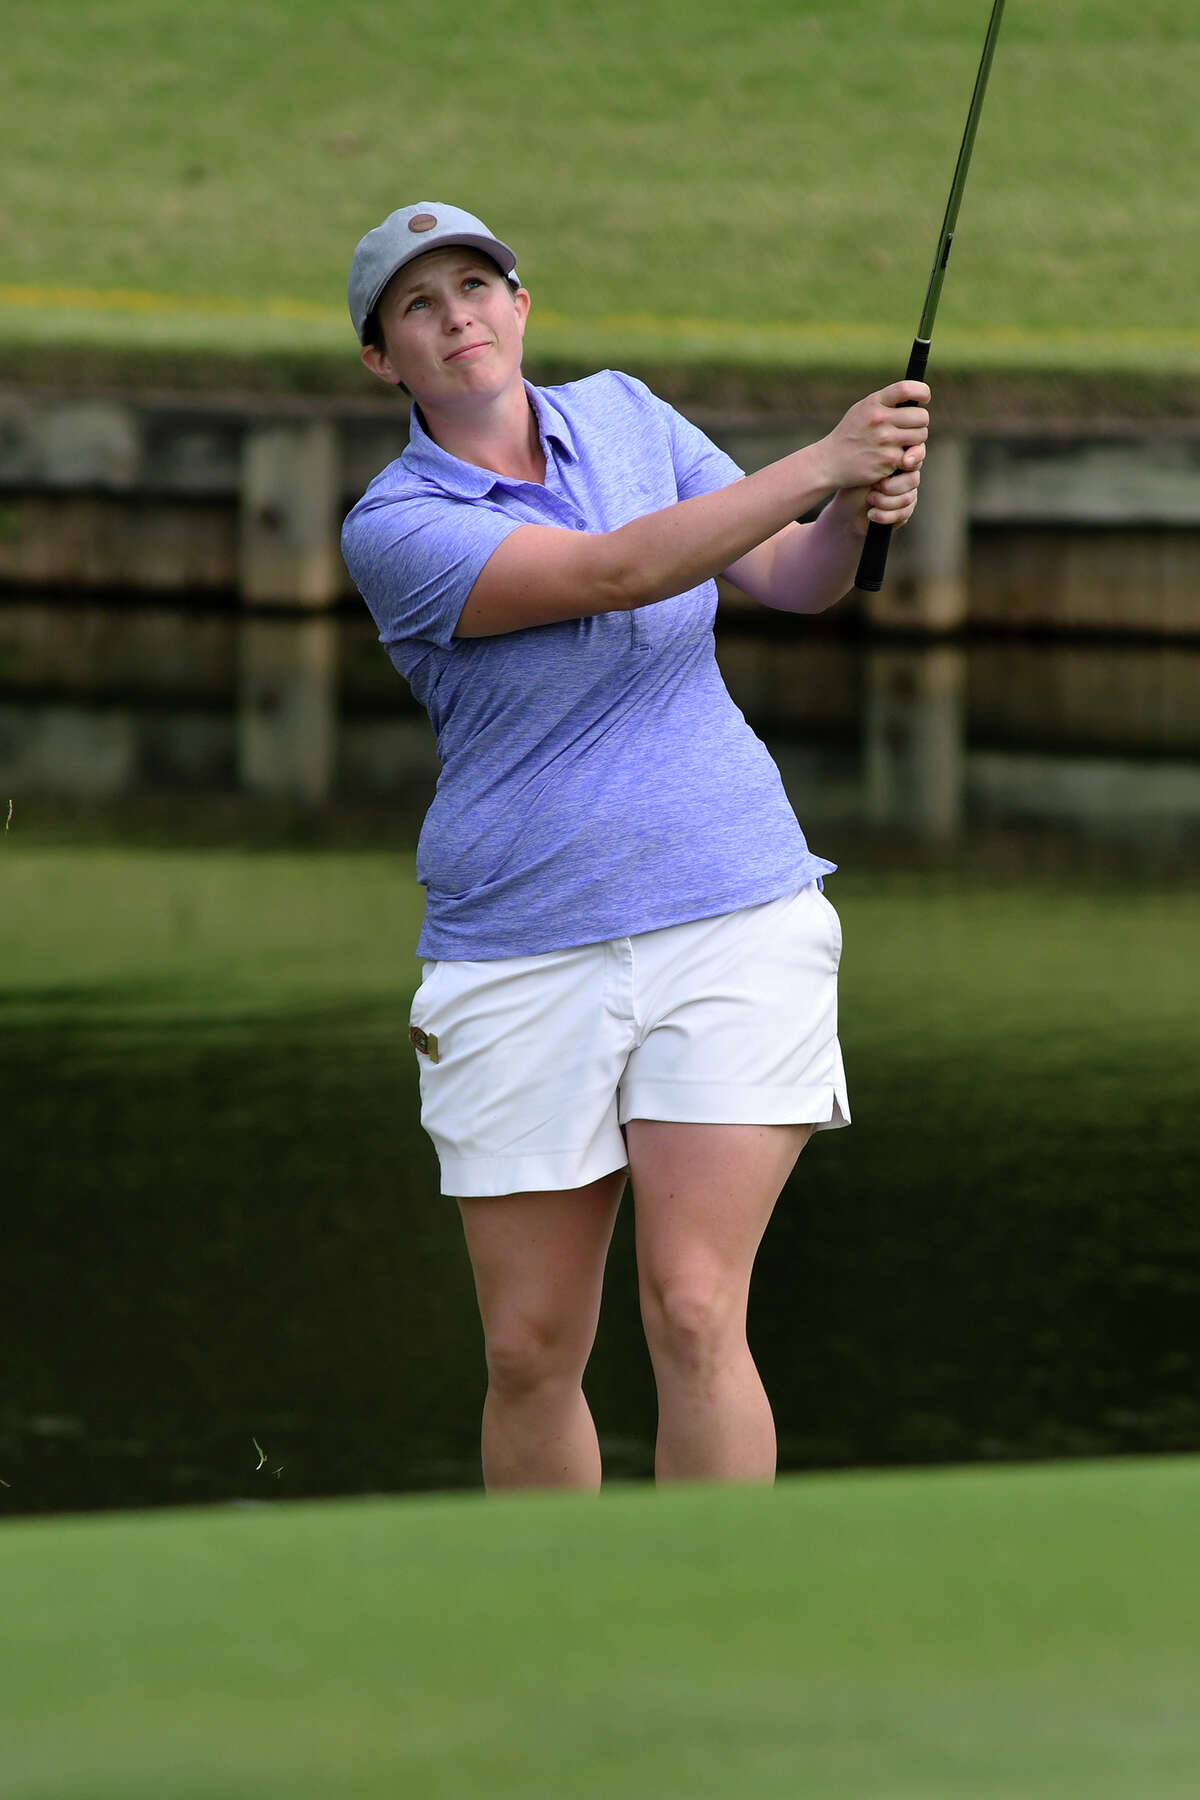 Kelsey Chugg, 26, of Salt Lake City, Utah, follows her chip shot to the green on the par 3 16th hole during the championship match of the U.S. Women's Mid-Amateur Championship at Champions Golf Club in Houston on Thursday, Nov. 16, 2017. (Photo by Jerry Baker/Freelance)